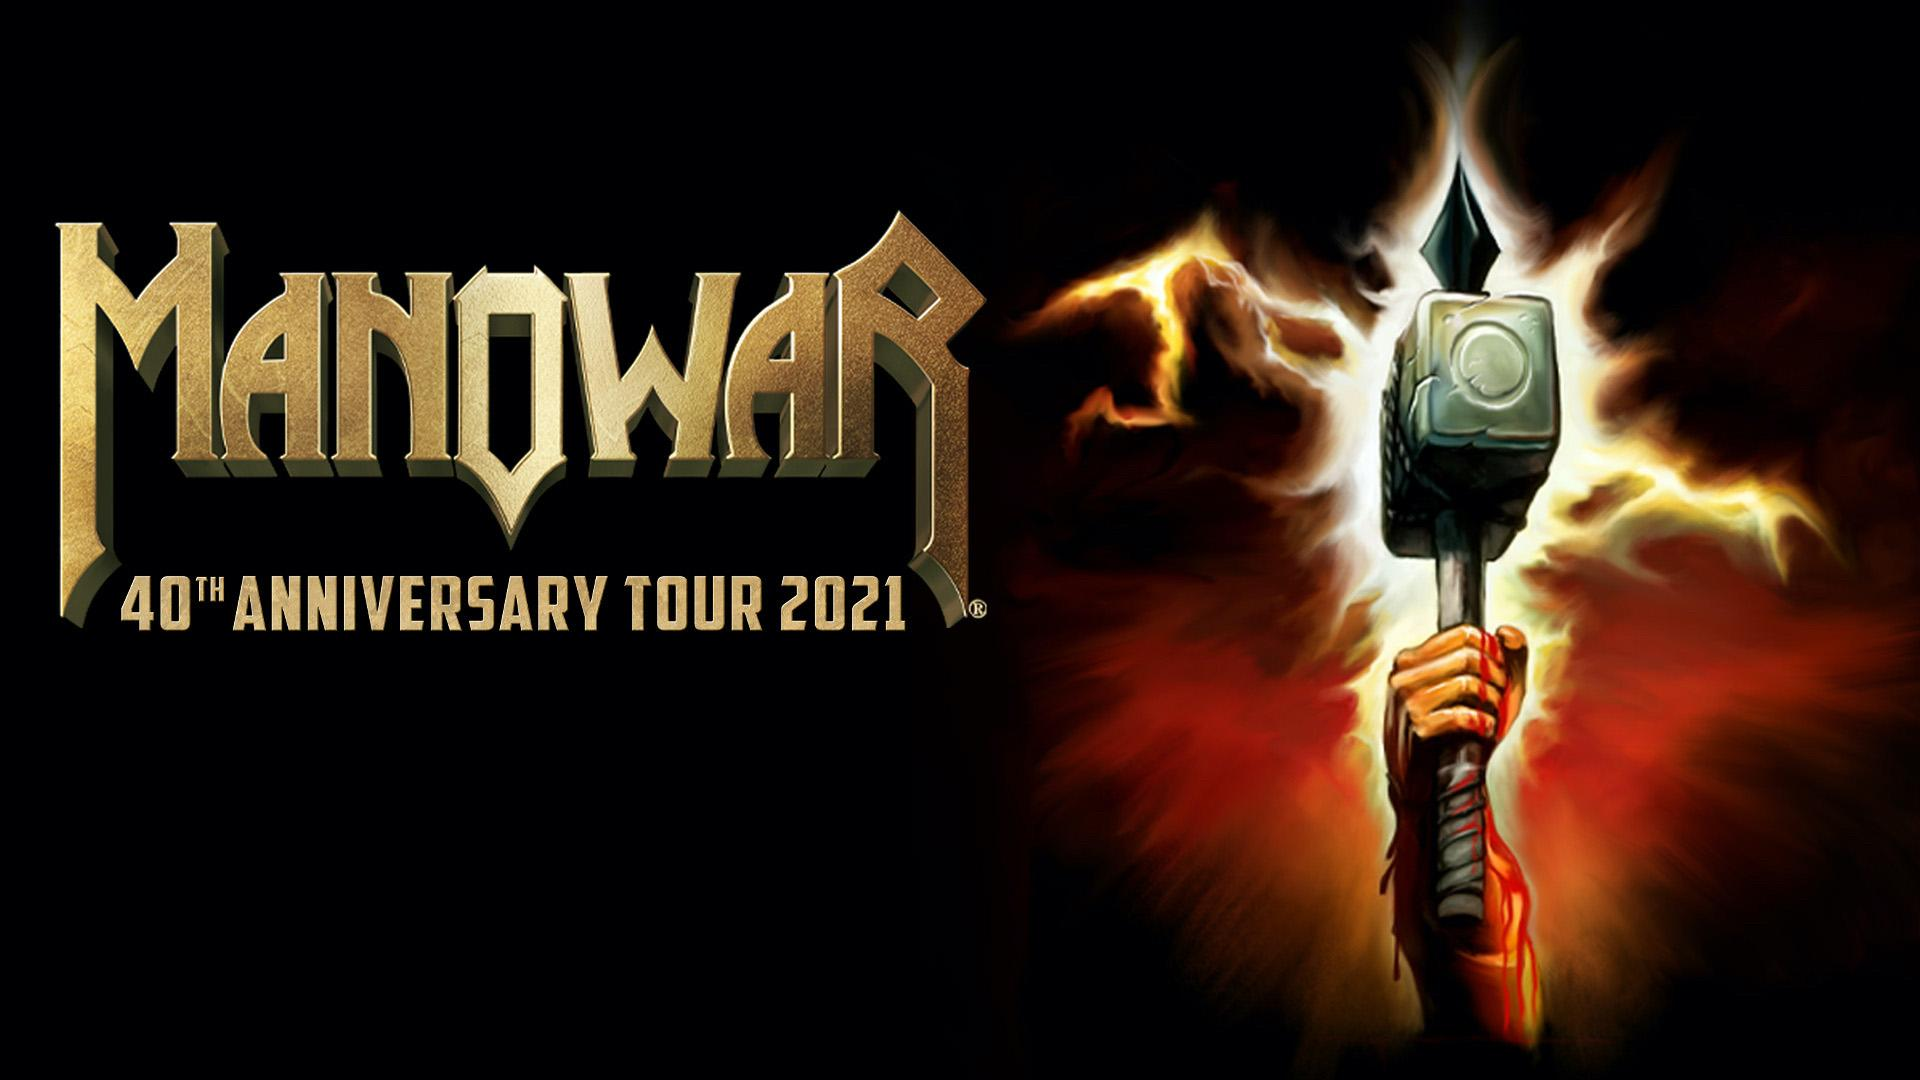 MANOWAR - 40th Anniversary Tour